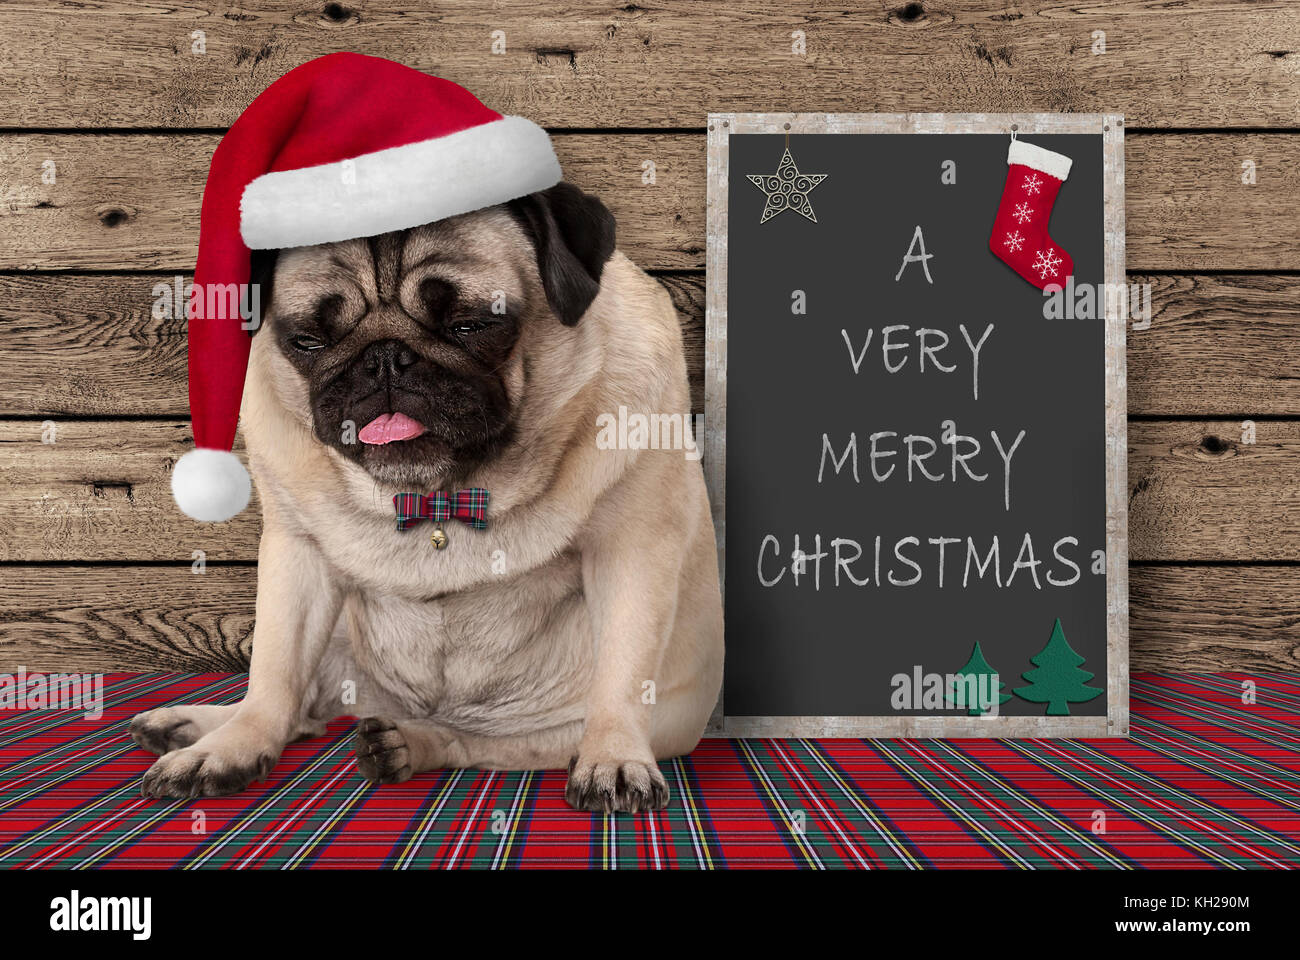 grumpy pug puppy dog with red santa hat sitting next to blackboard sign with text very merry Christmas, on wooden - Stock Image